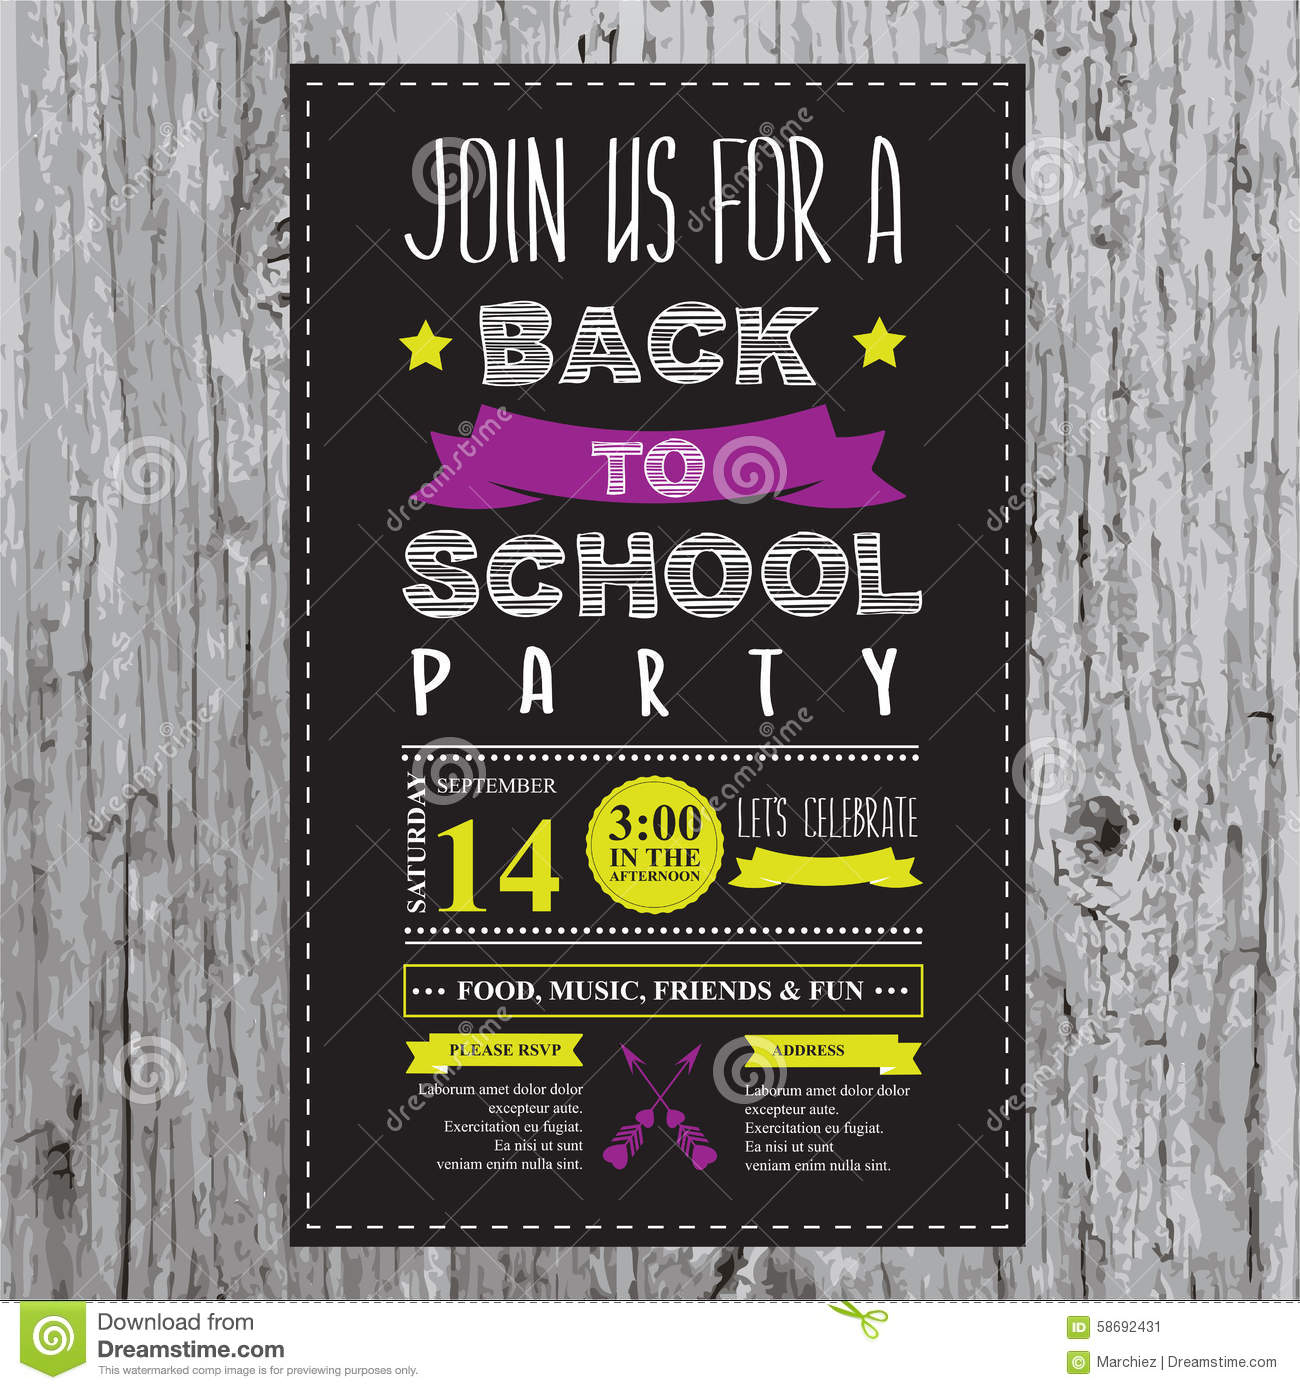 Back to school party invitation stock vector illustration of download back to school party invitation stock vector illustration of board template stopboris Images